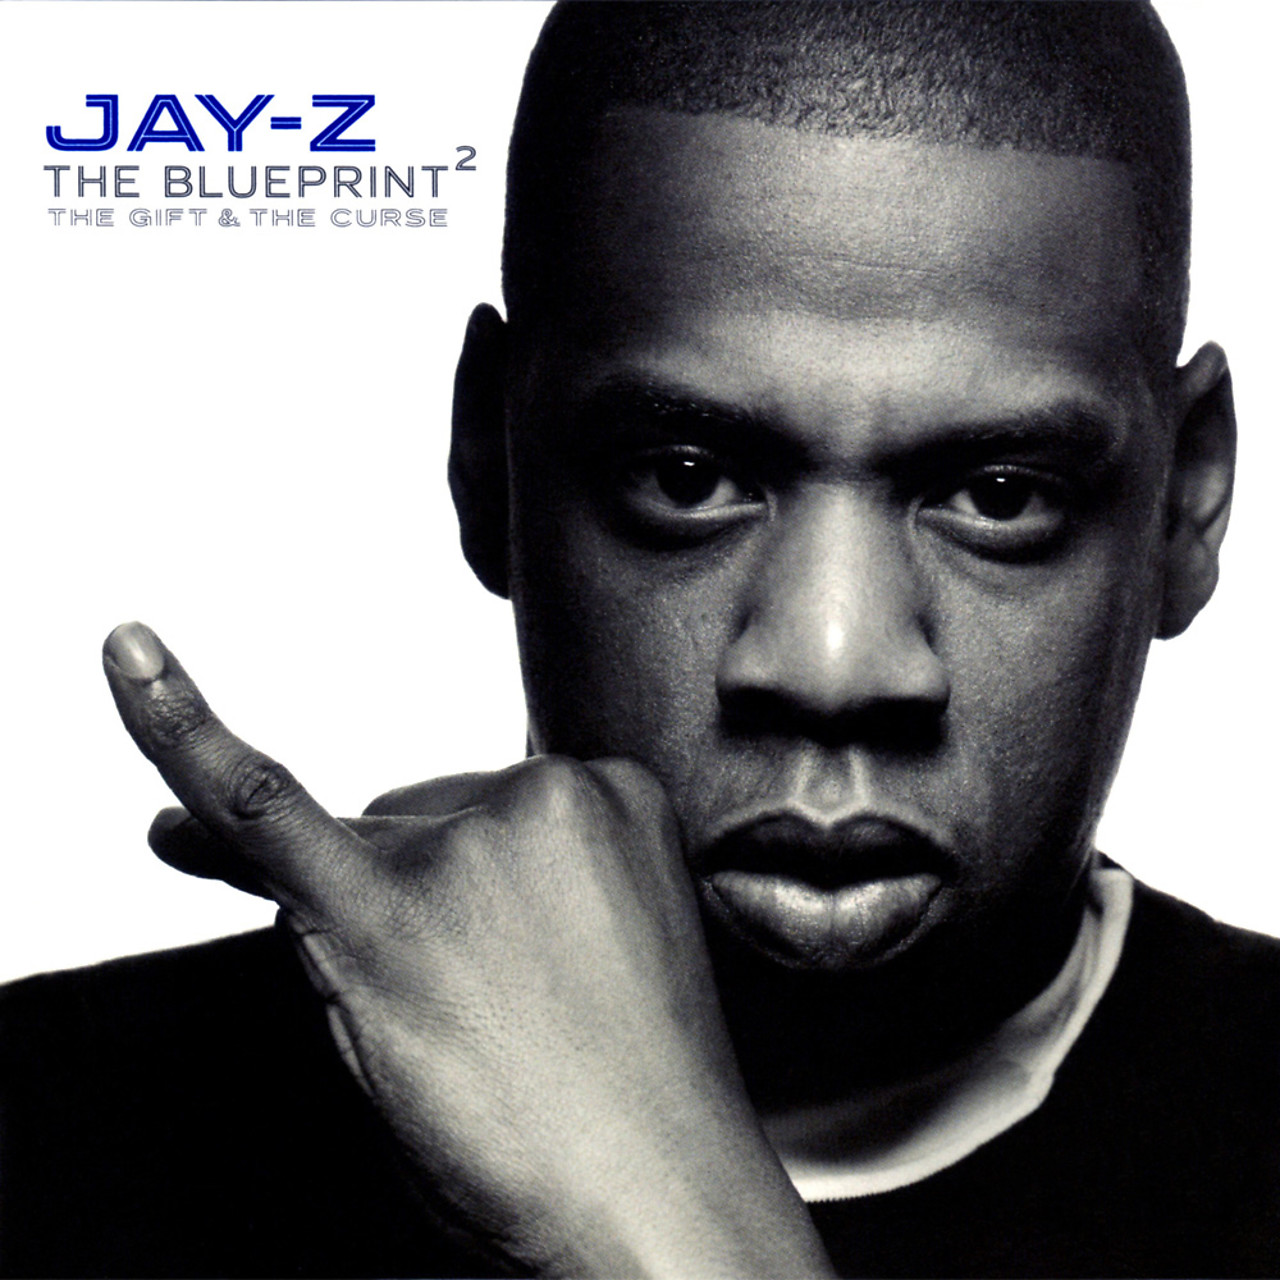 The blueprint 2 the gift the curse explicit version by jay z the blueprint 2 the gift the curse explicit version by jay z arena music malvernweather Choice Image